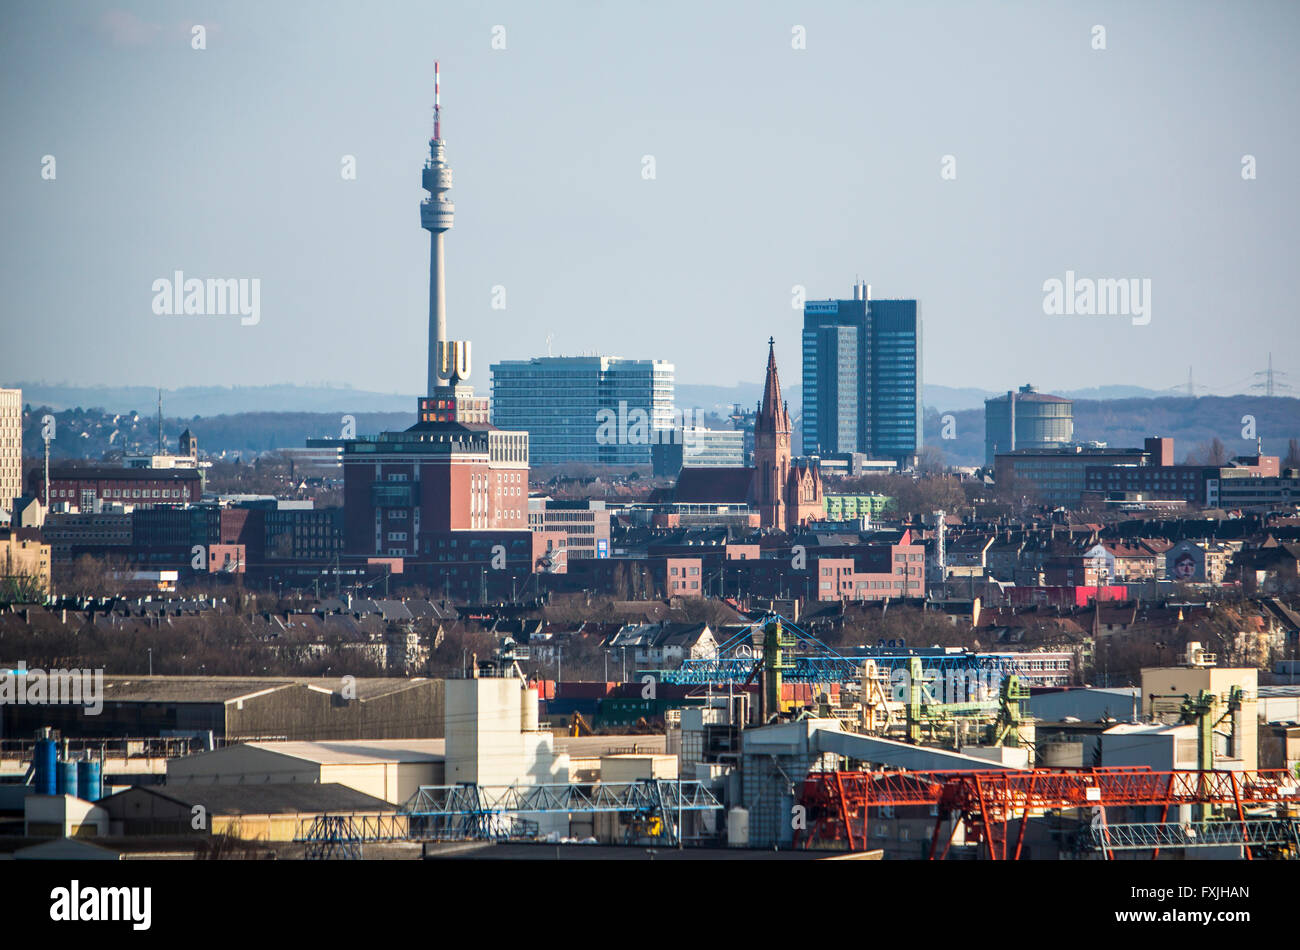 panorama city dortmund stadt tv tower florian dortmunder u d stockfoto bild 102441661 alamy. Black Bedroom Furniture Sets. Home Design Ideas